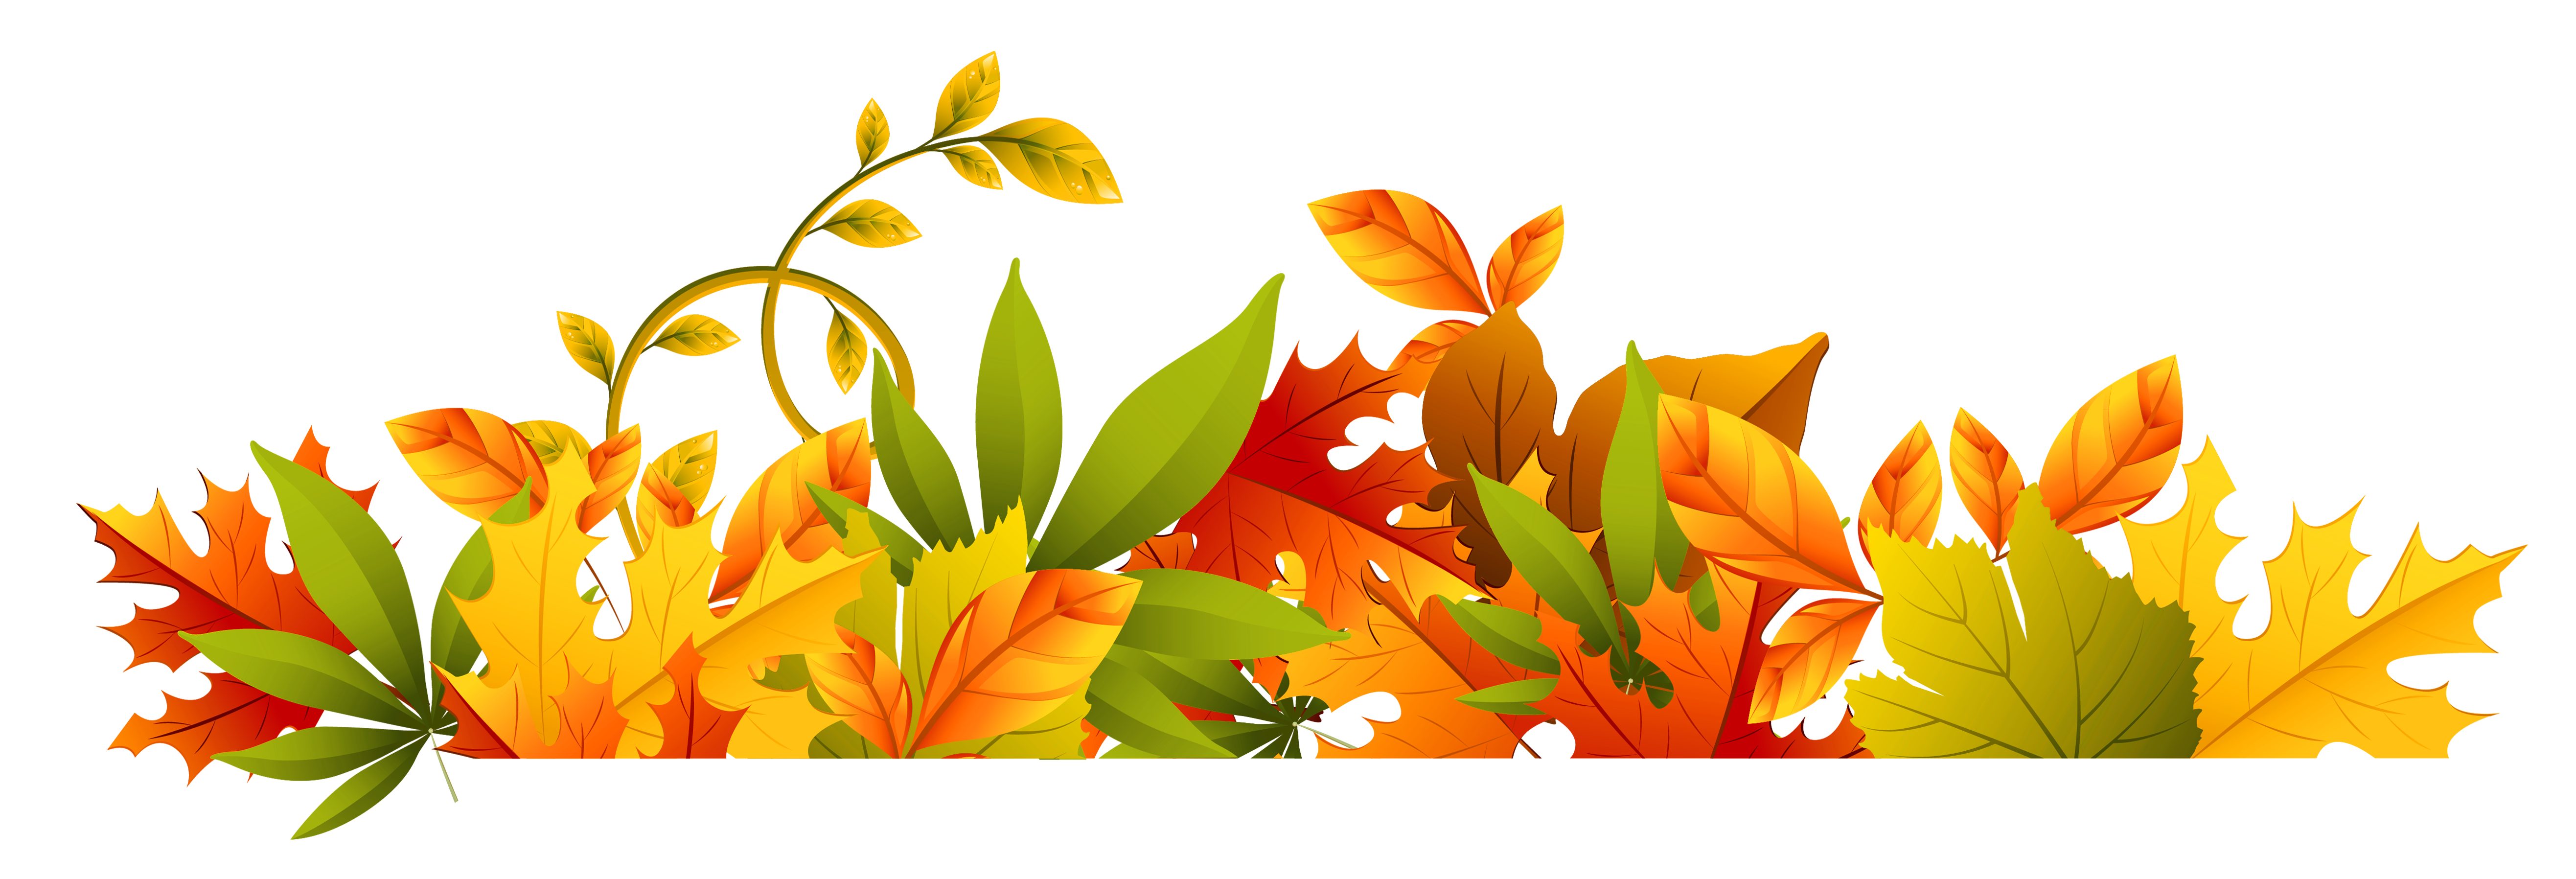 Fall Leaves Clip Art Free Fall Transparent Leaves. Free Fall Borders Cliparts Co